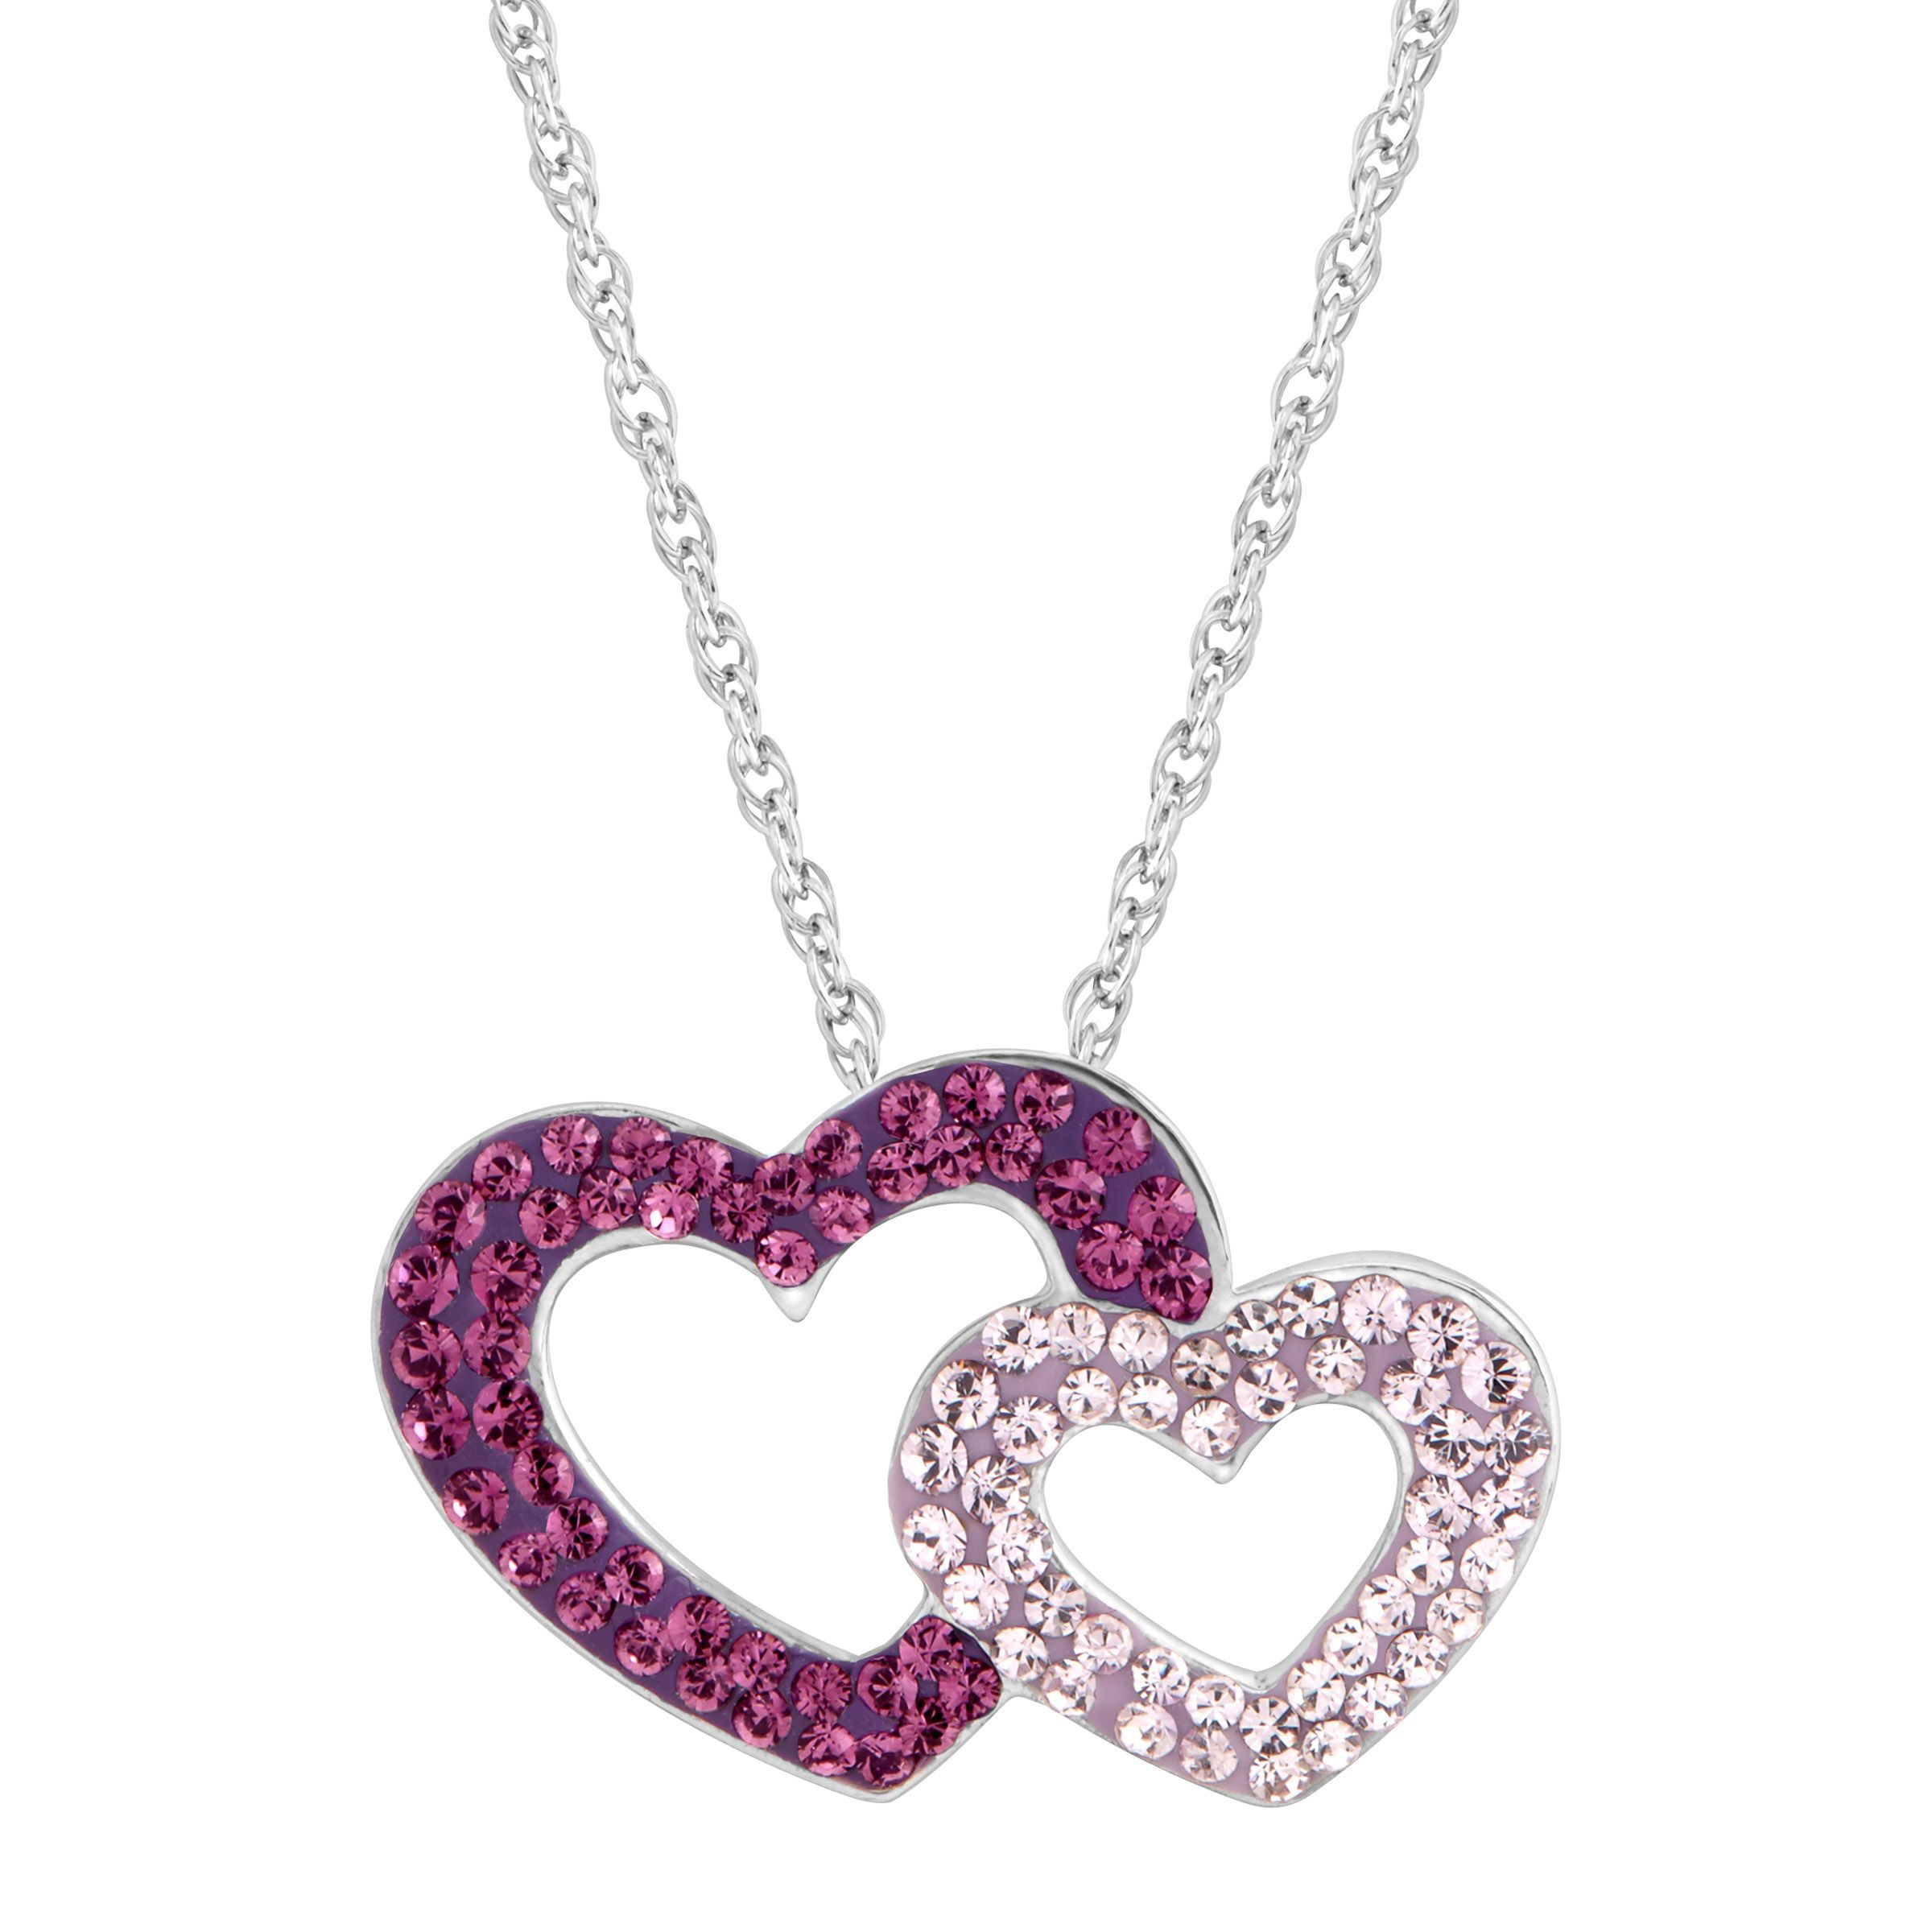 pink pin is double heart an sparkling here crystal approximately adorable charm pendant measures necklace